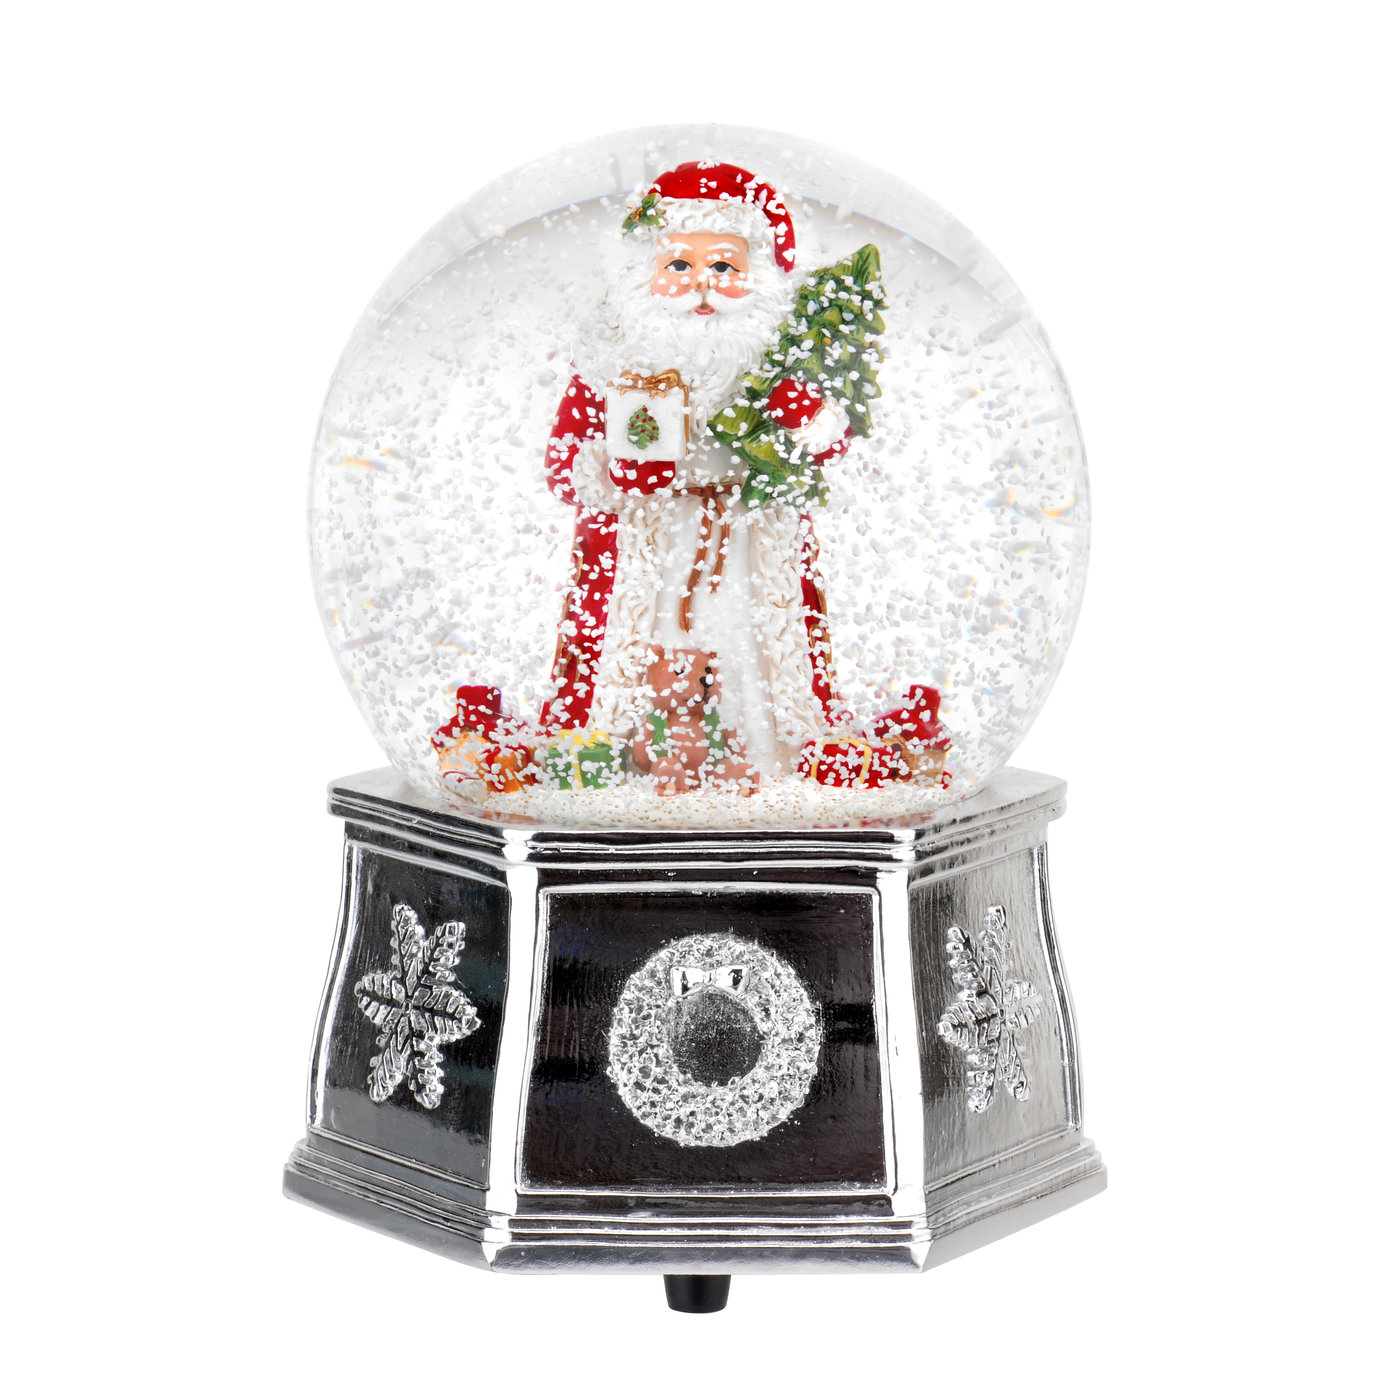 Spode Christmas Tree 5.5 Inch Santa Musical Snow Globe image number 0